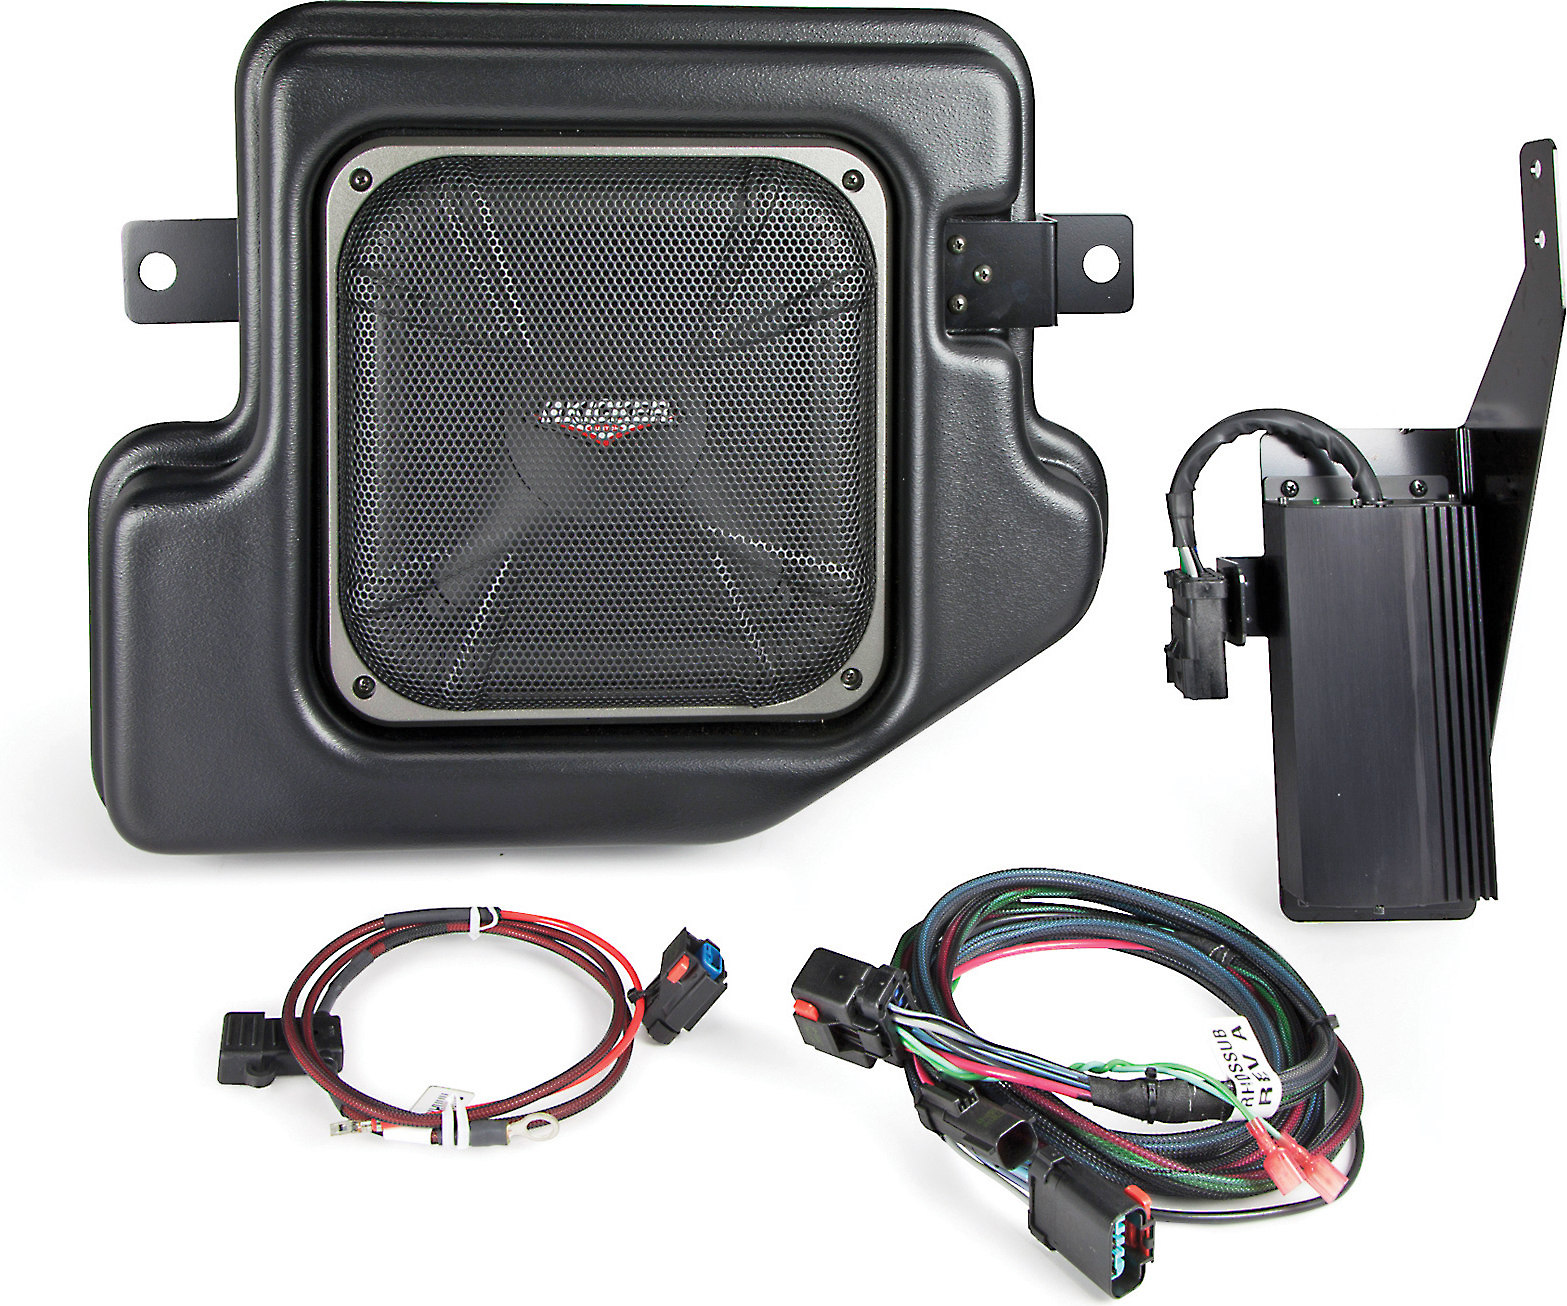 hight resolution of kicker vss substage sramcq09 custom fit powered subwoofer for 2009 up dodge ram crew and quad cab at crutchfield